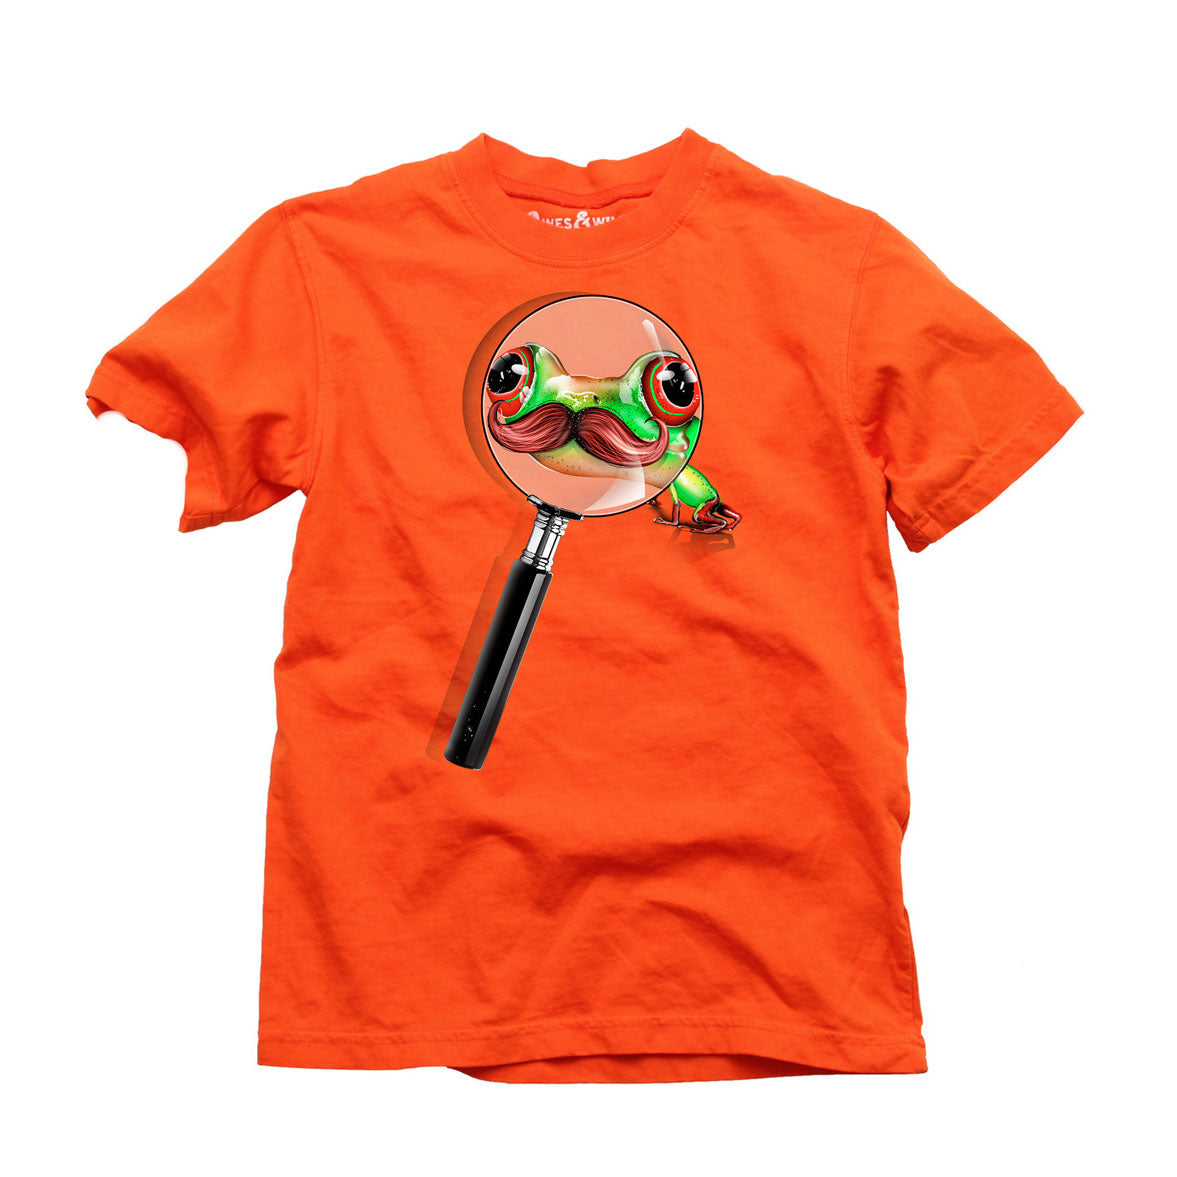 Boys' Magnified Stash Shirt by Wes and Willy